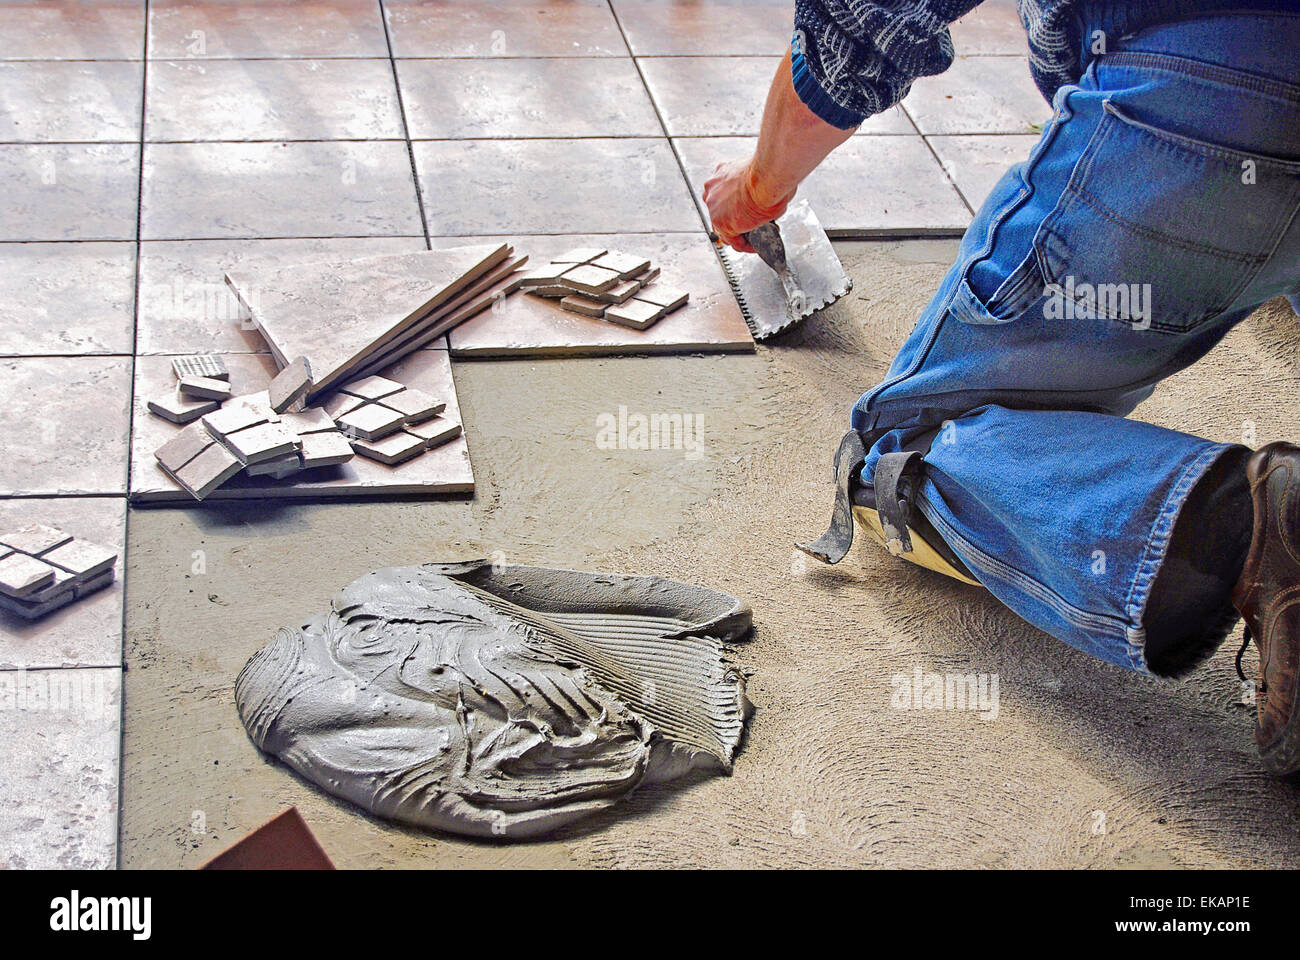 Tile layer on his knees using a trowel to install floor tile stock tile layer on his knees using a trowel to install floor tile dailygadgetfo Gallery